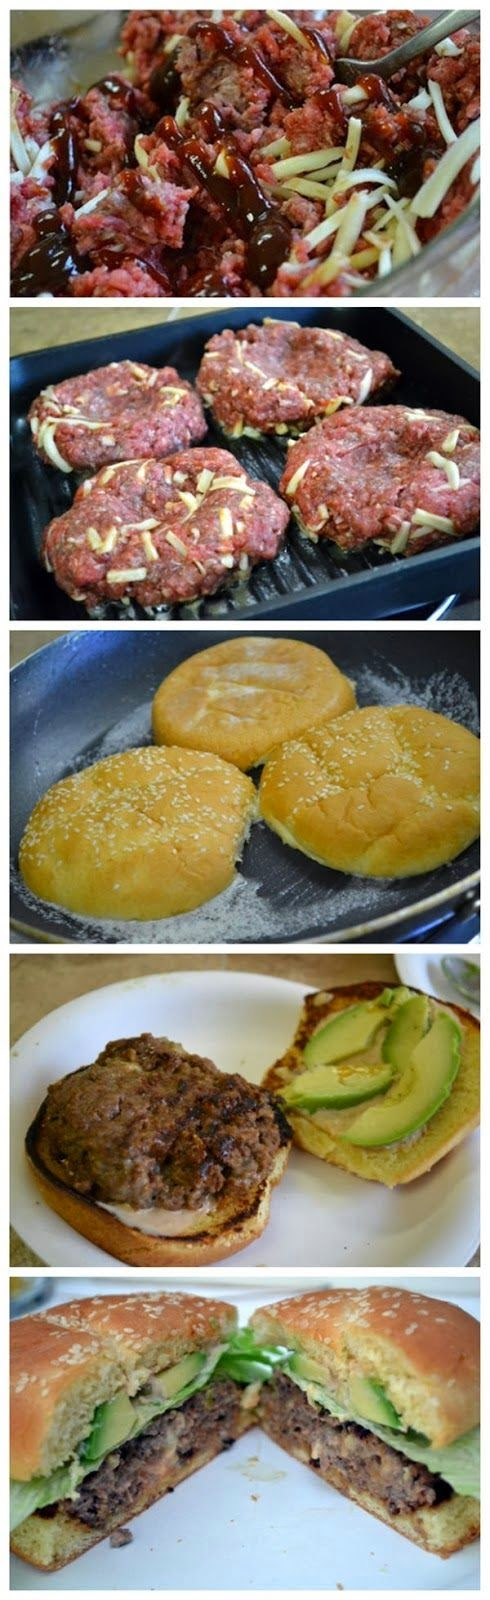 How To Make Best Burger Recipe Ever with Secret Sauce